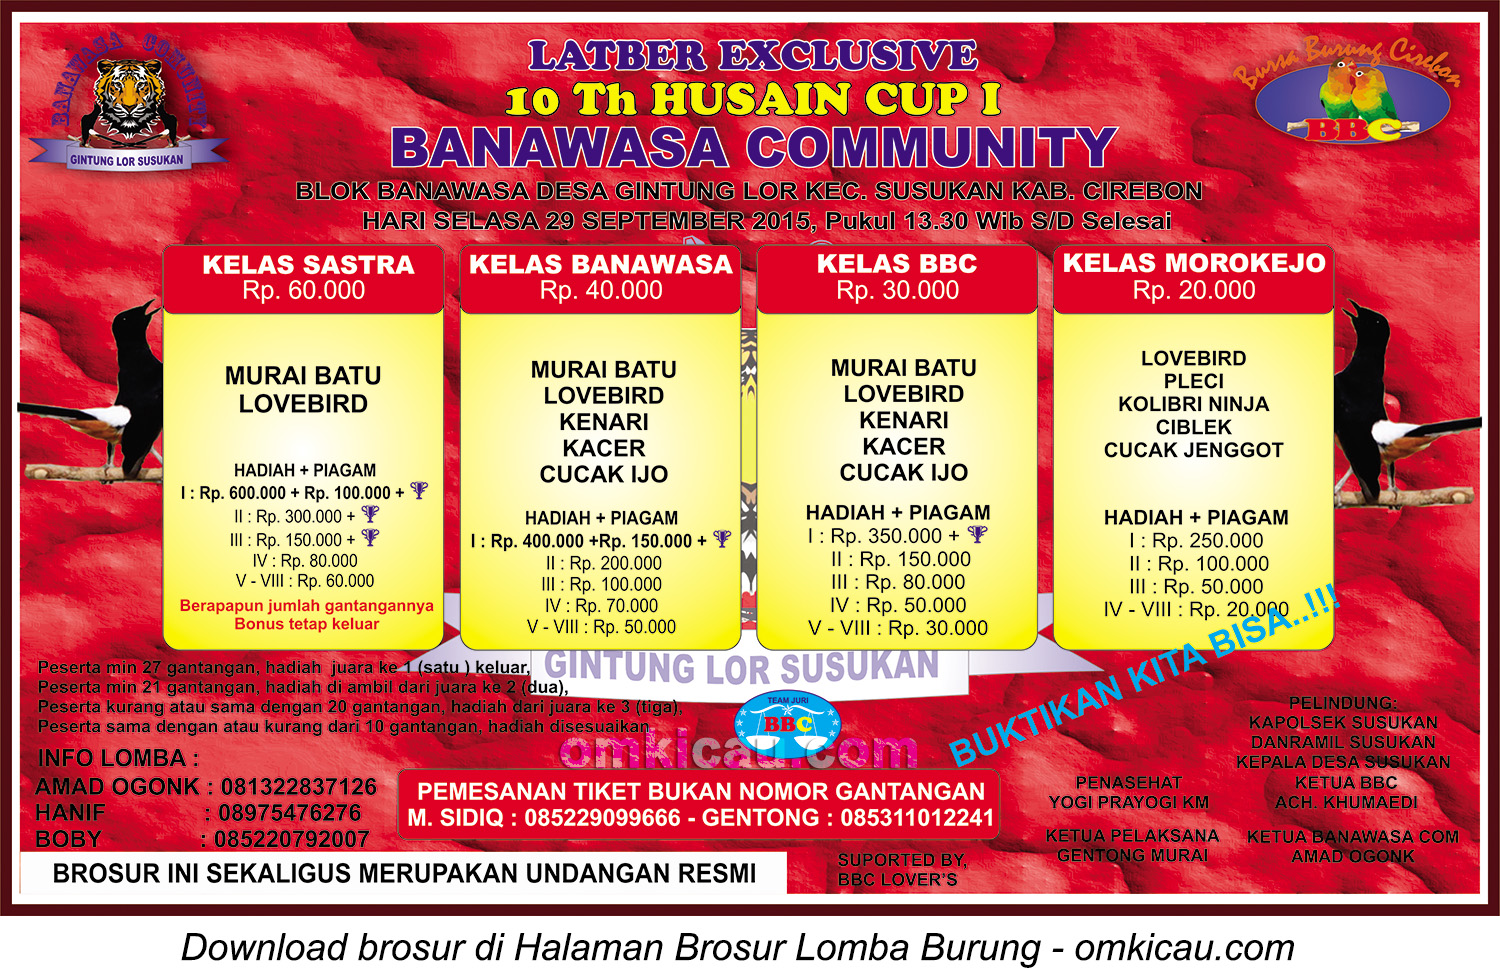 Brosur Latber Exclusive 10Th Husain CUp I Banawasa Community, Cirebon, 29 September 2015